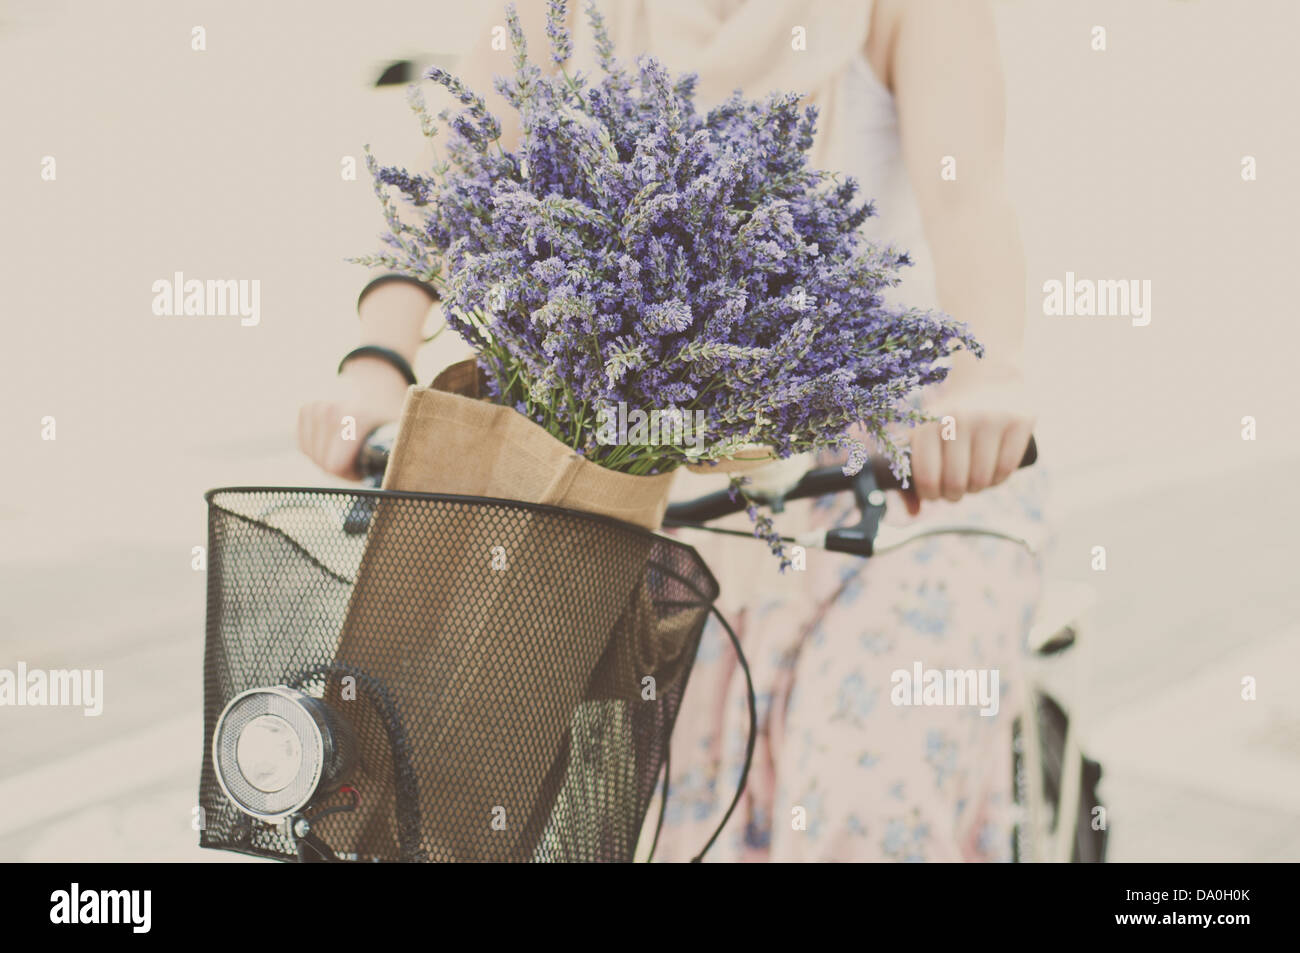 Women riding bike with lavender bouquet in basket - Stock Image